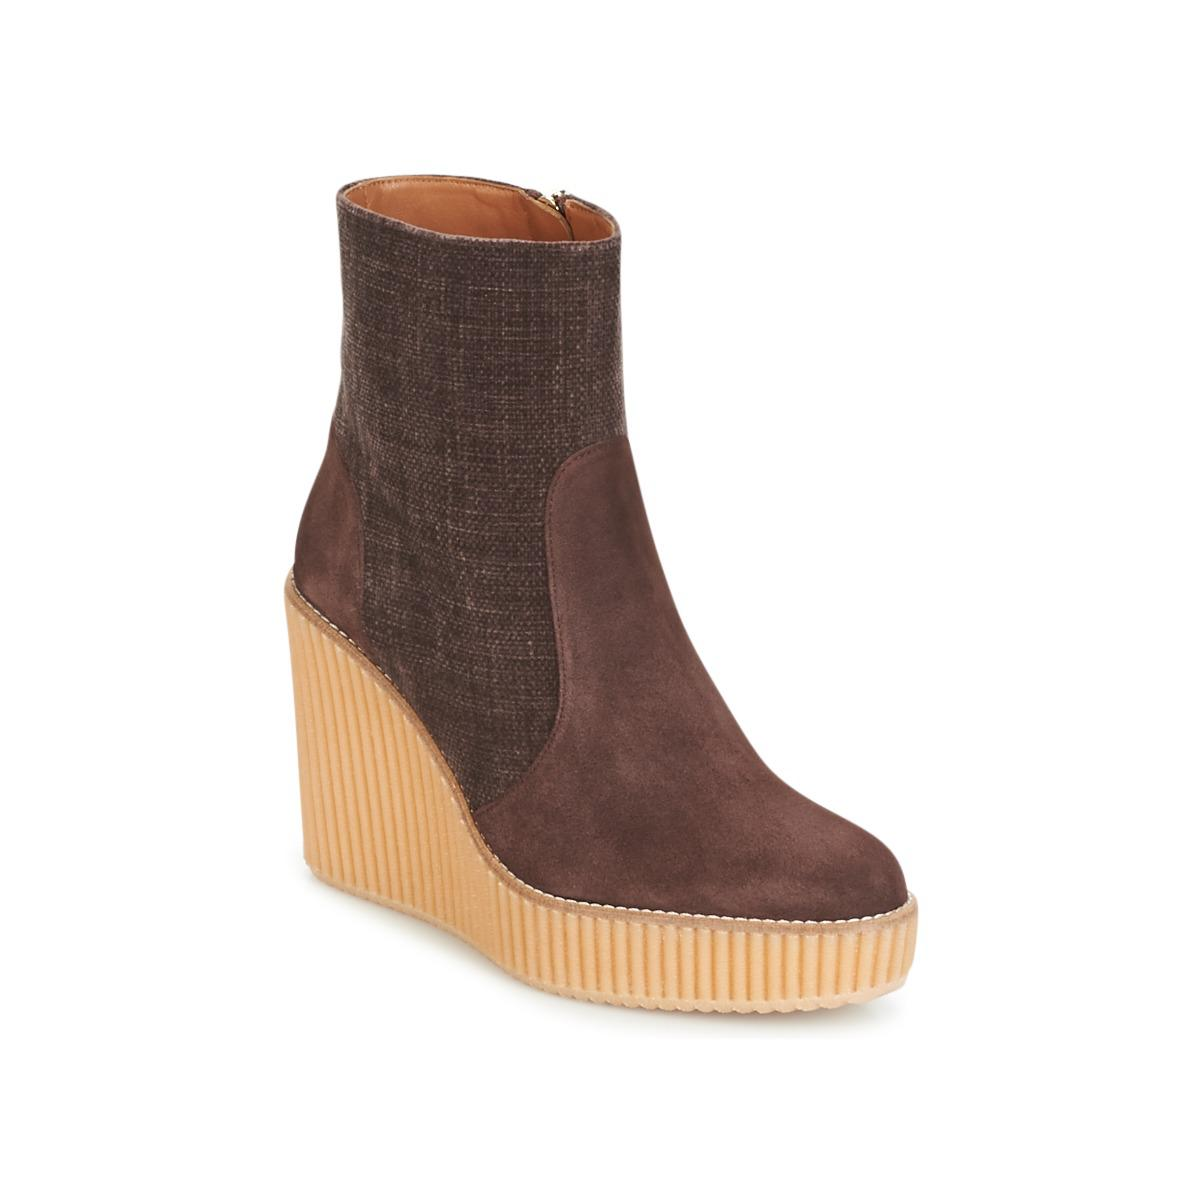 8f8761e64880 Castaner Quilmes Mid Boots in Brown - Lyst